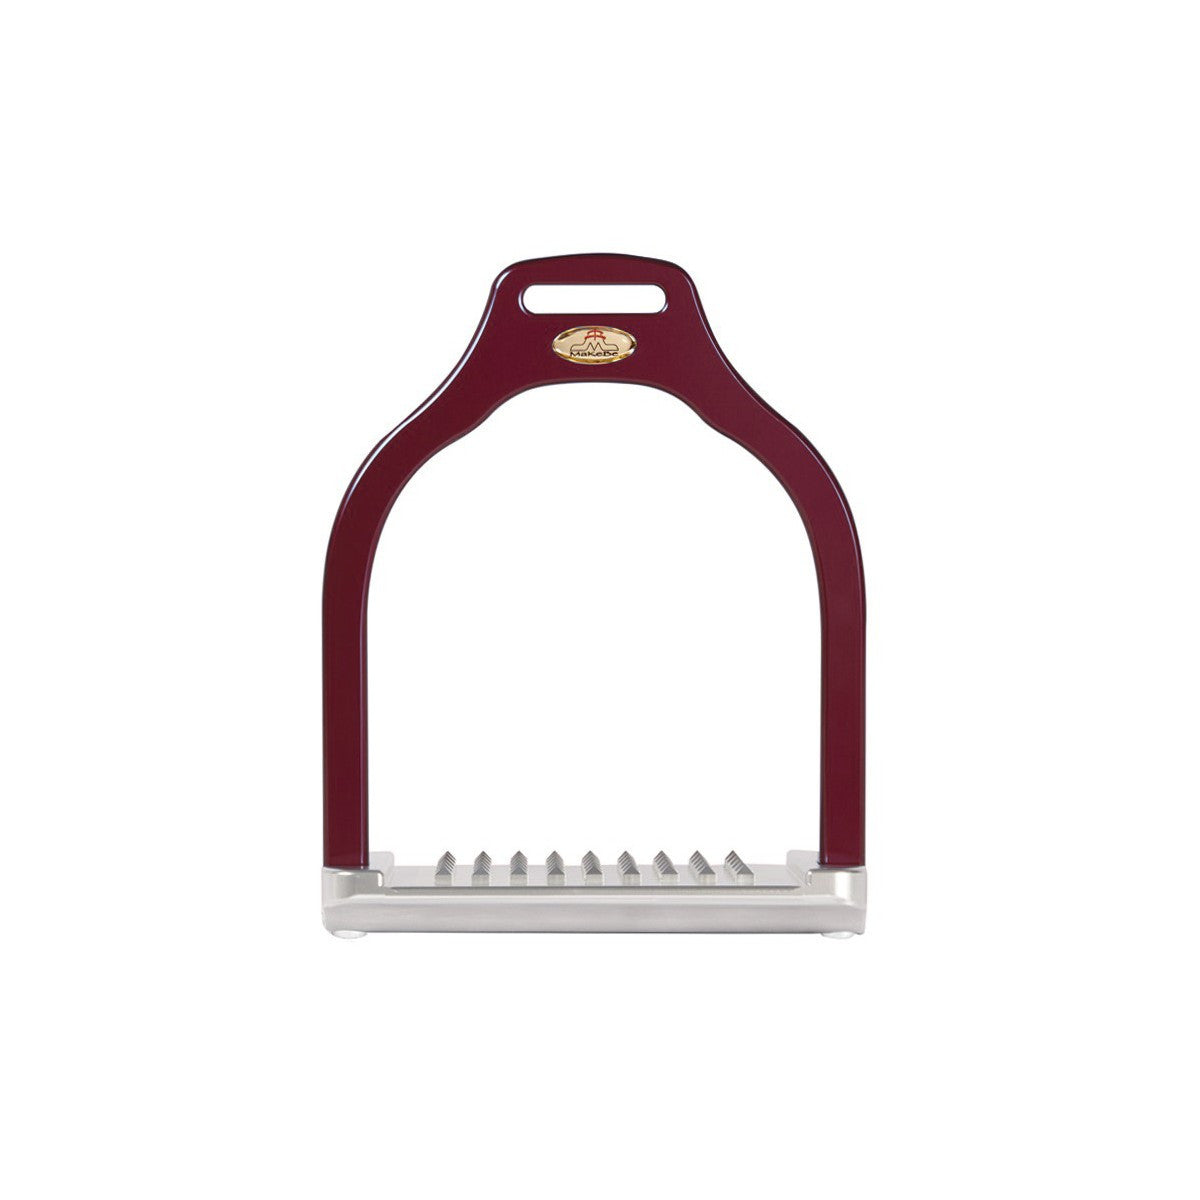 MakeBe Dressage Wave Stirrups in Burgandy / Purple